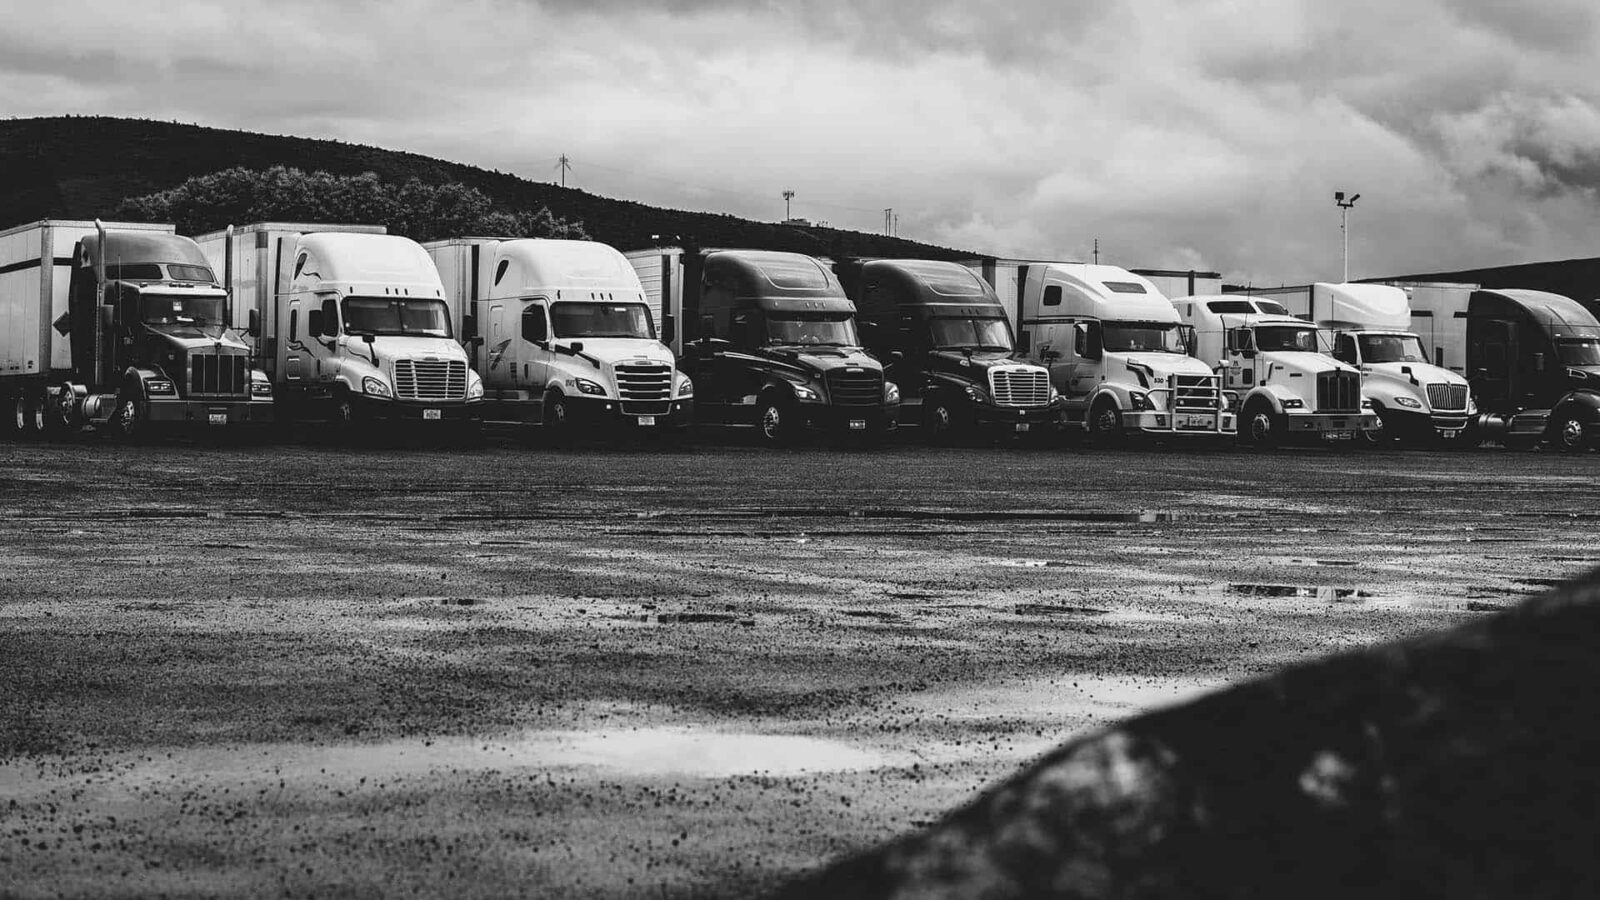 Nine semi trucks parked side-by-side in a parking lot against a overcast cloudy sky.